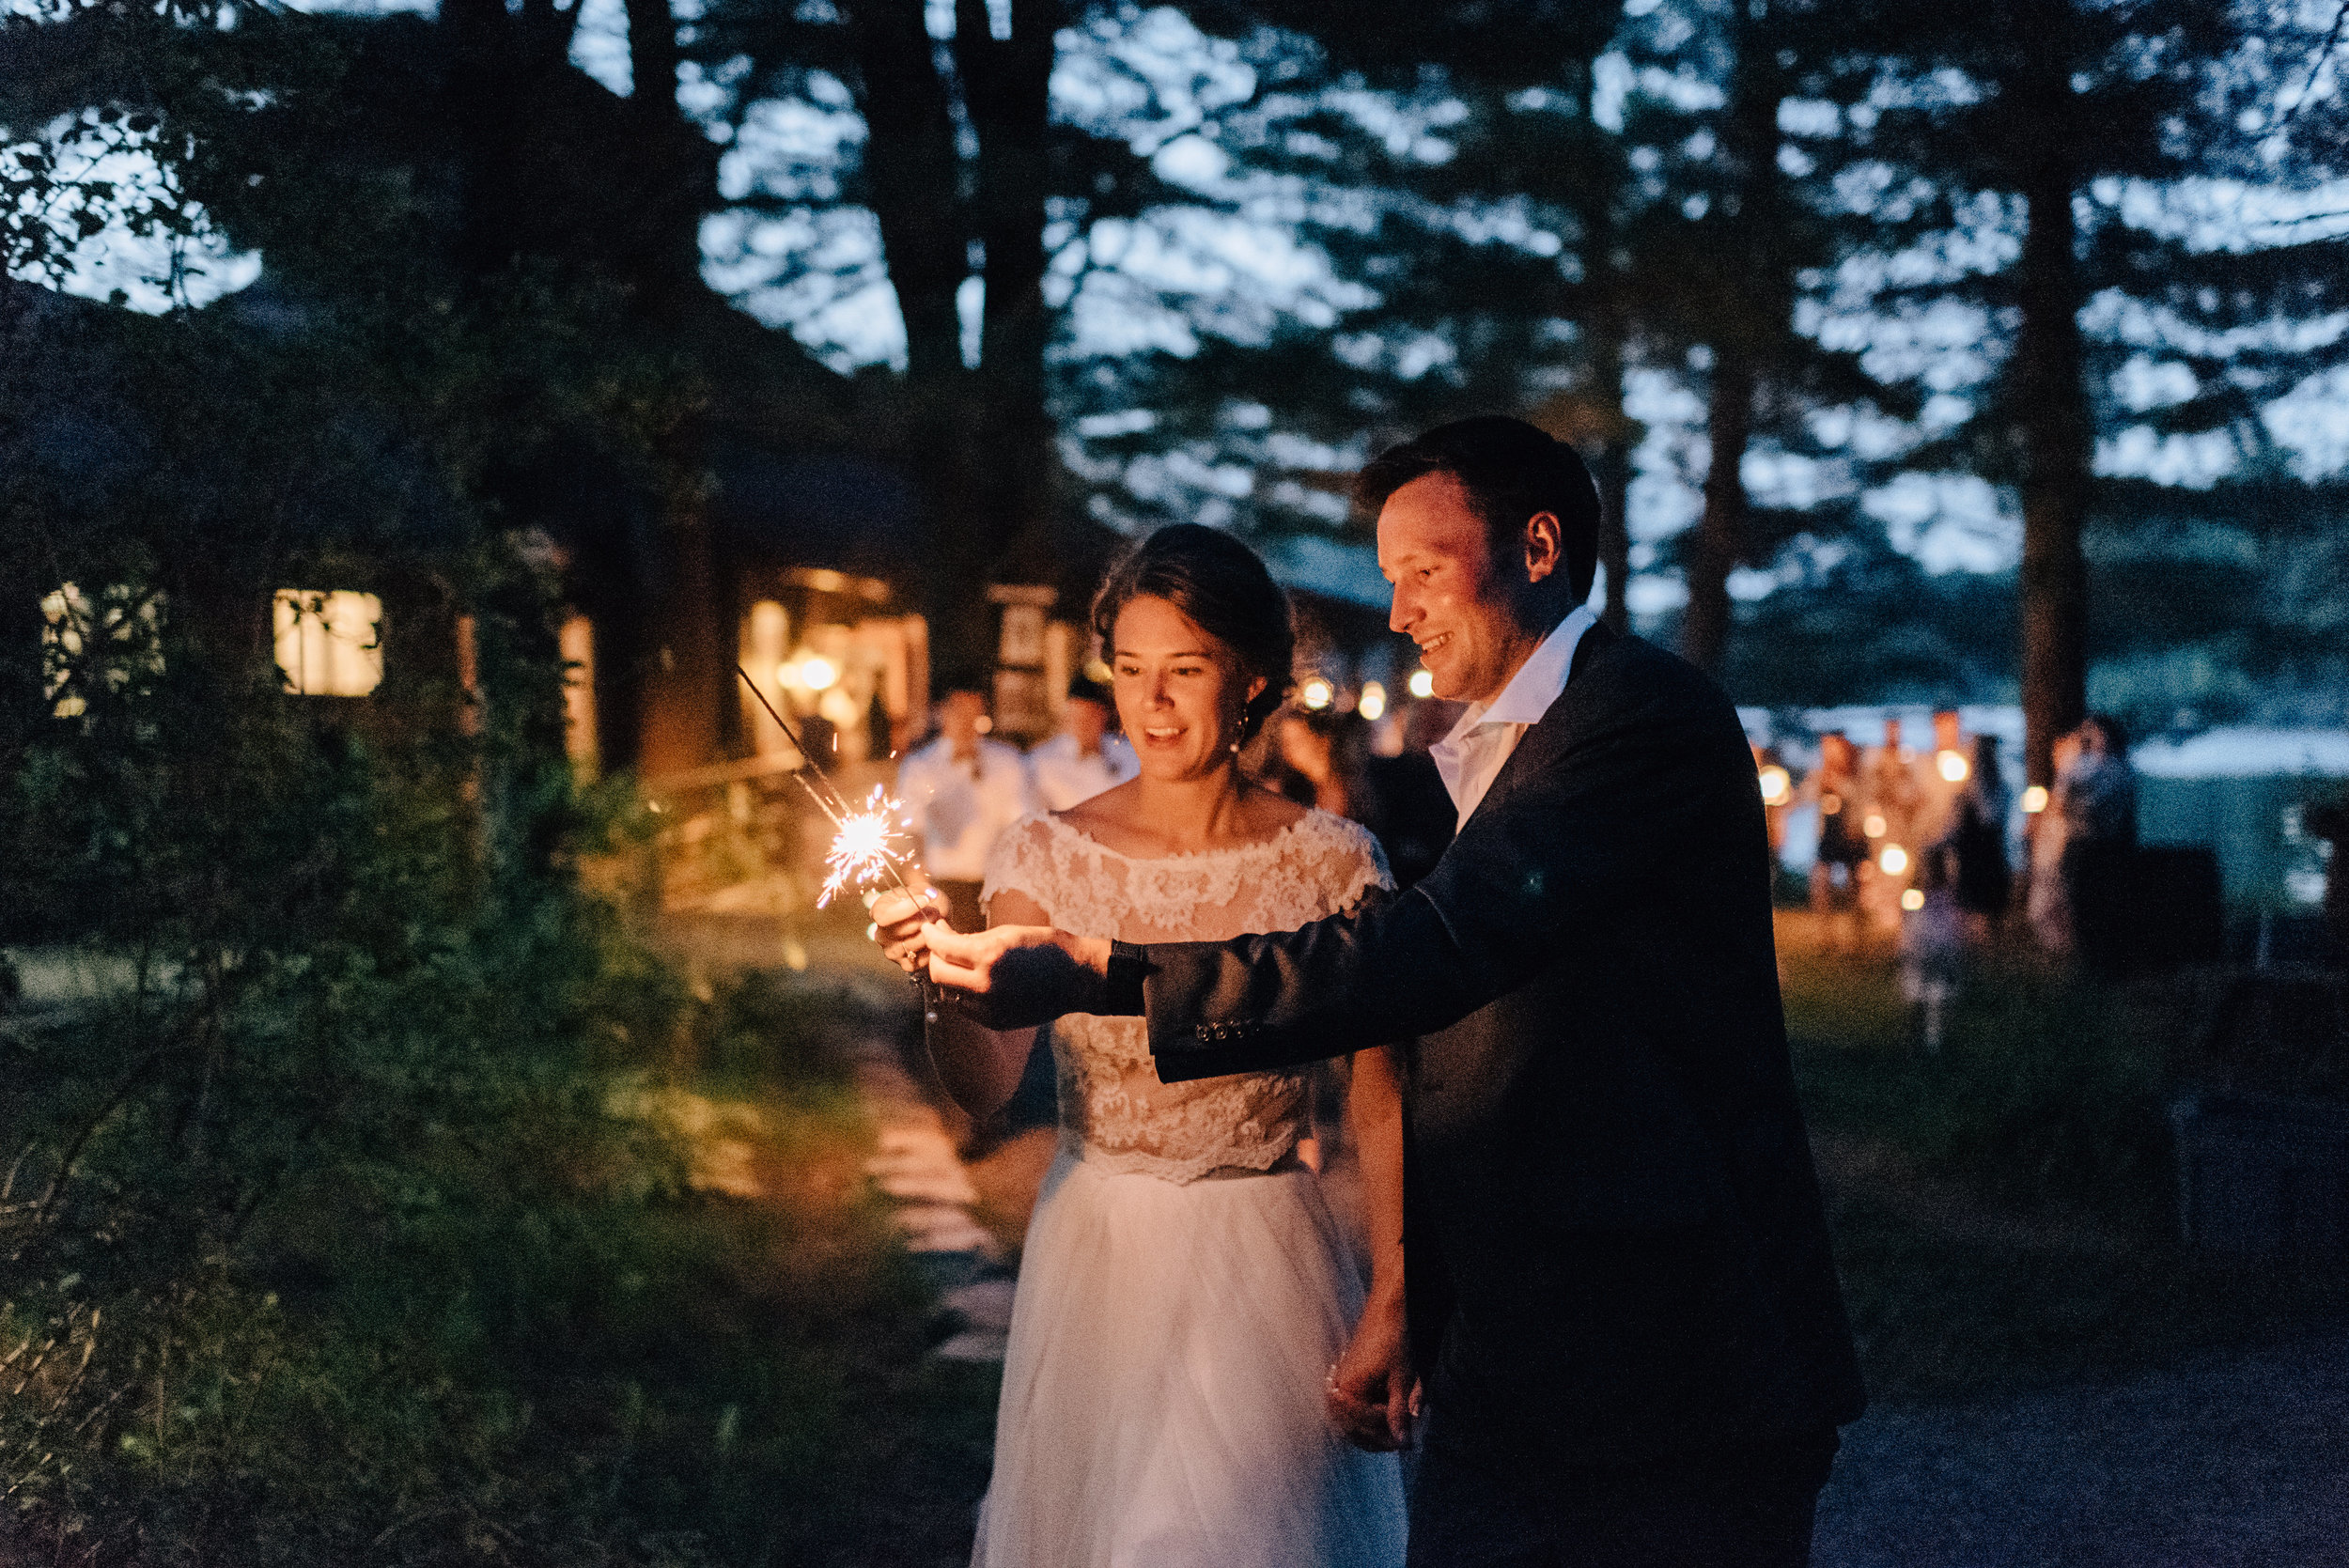 Algonquin Wedding at Arowhon Pines Resort